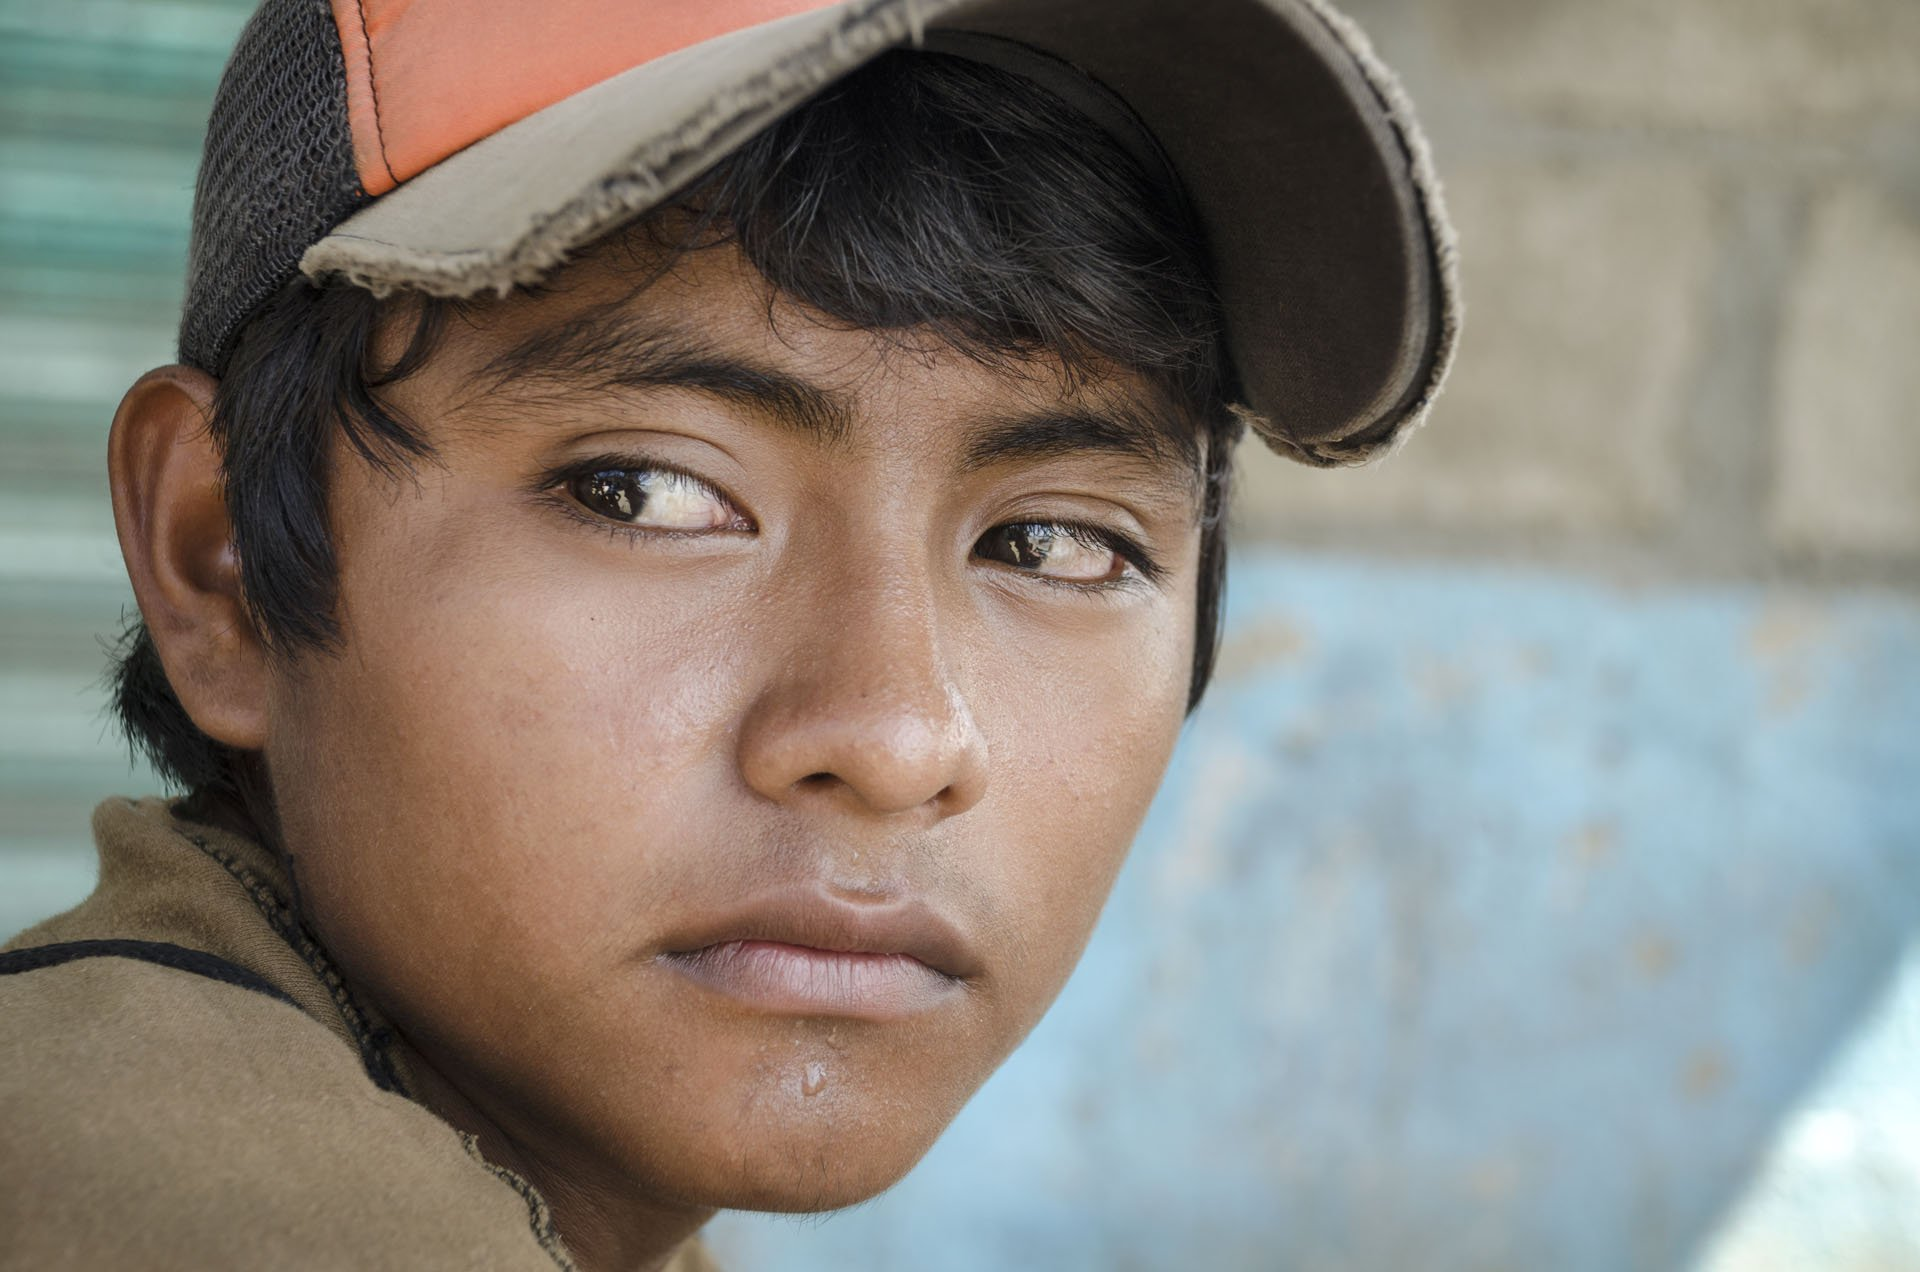 Great glance portrait from a young boy in the southern border of Mexico